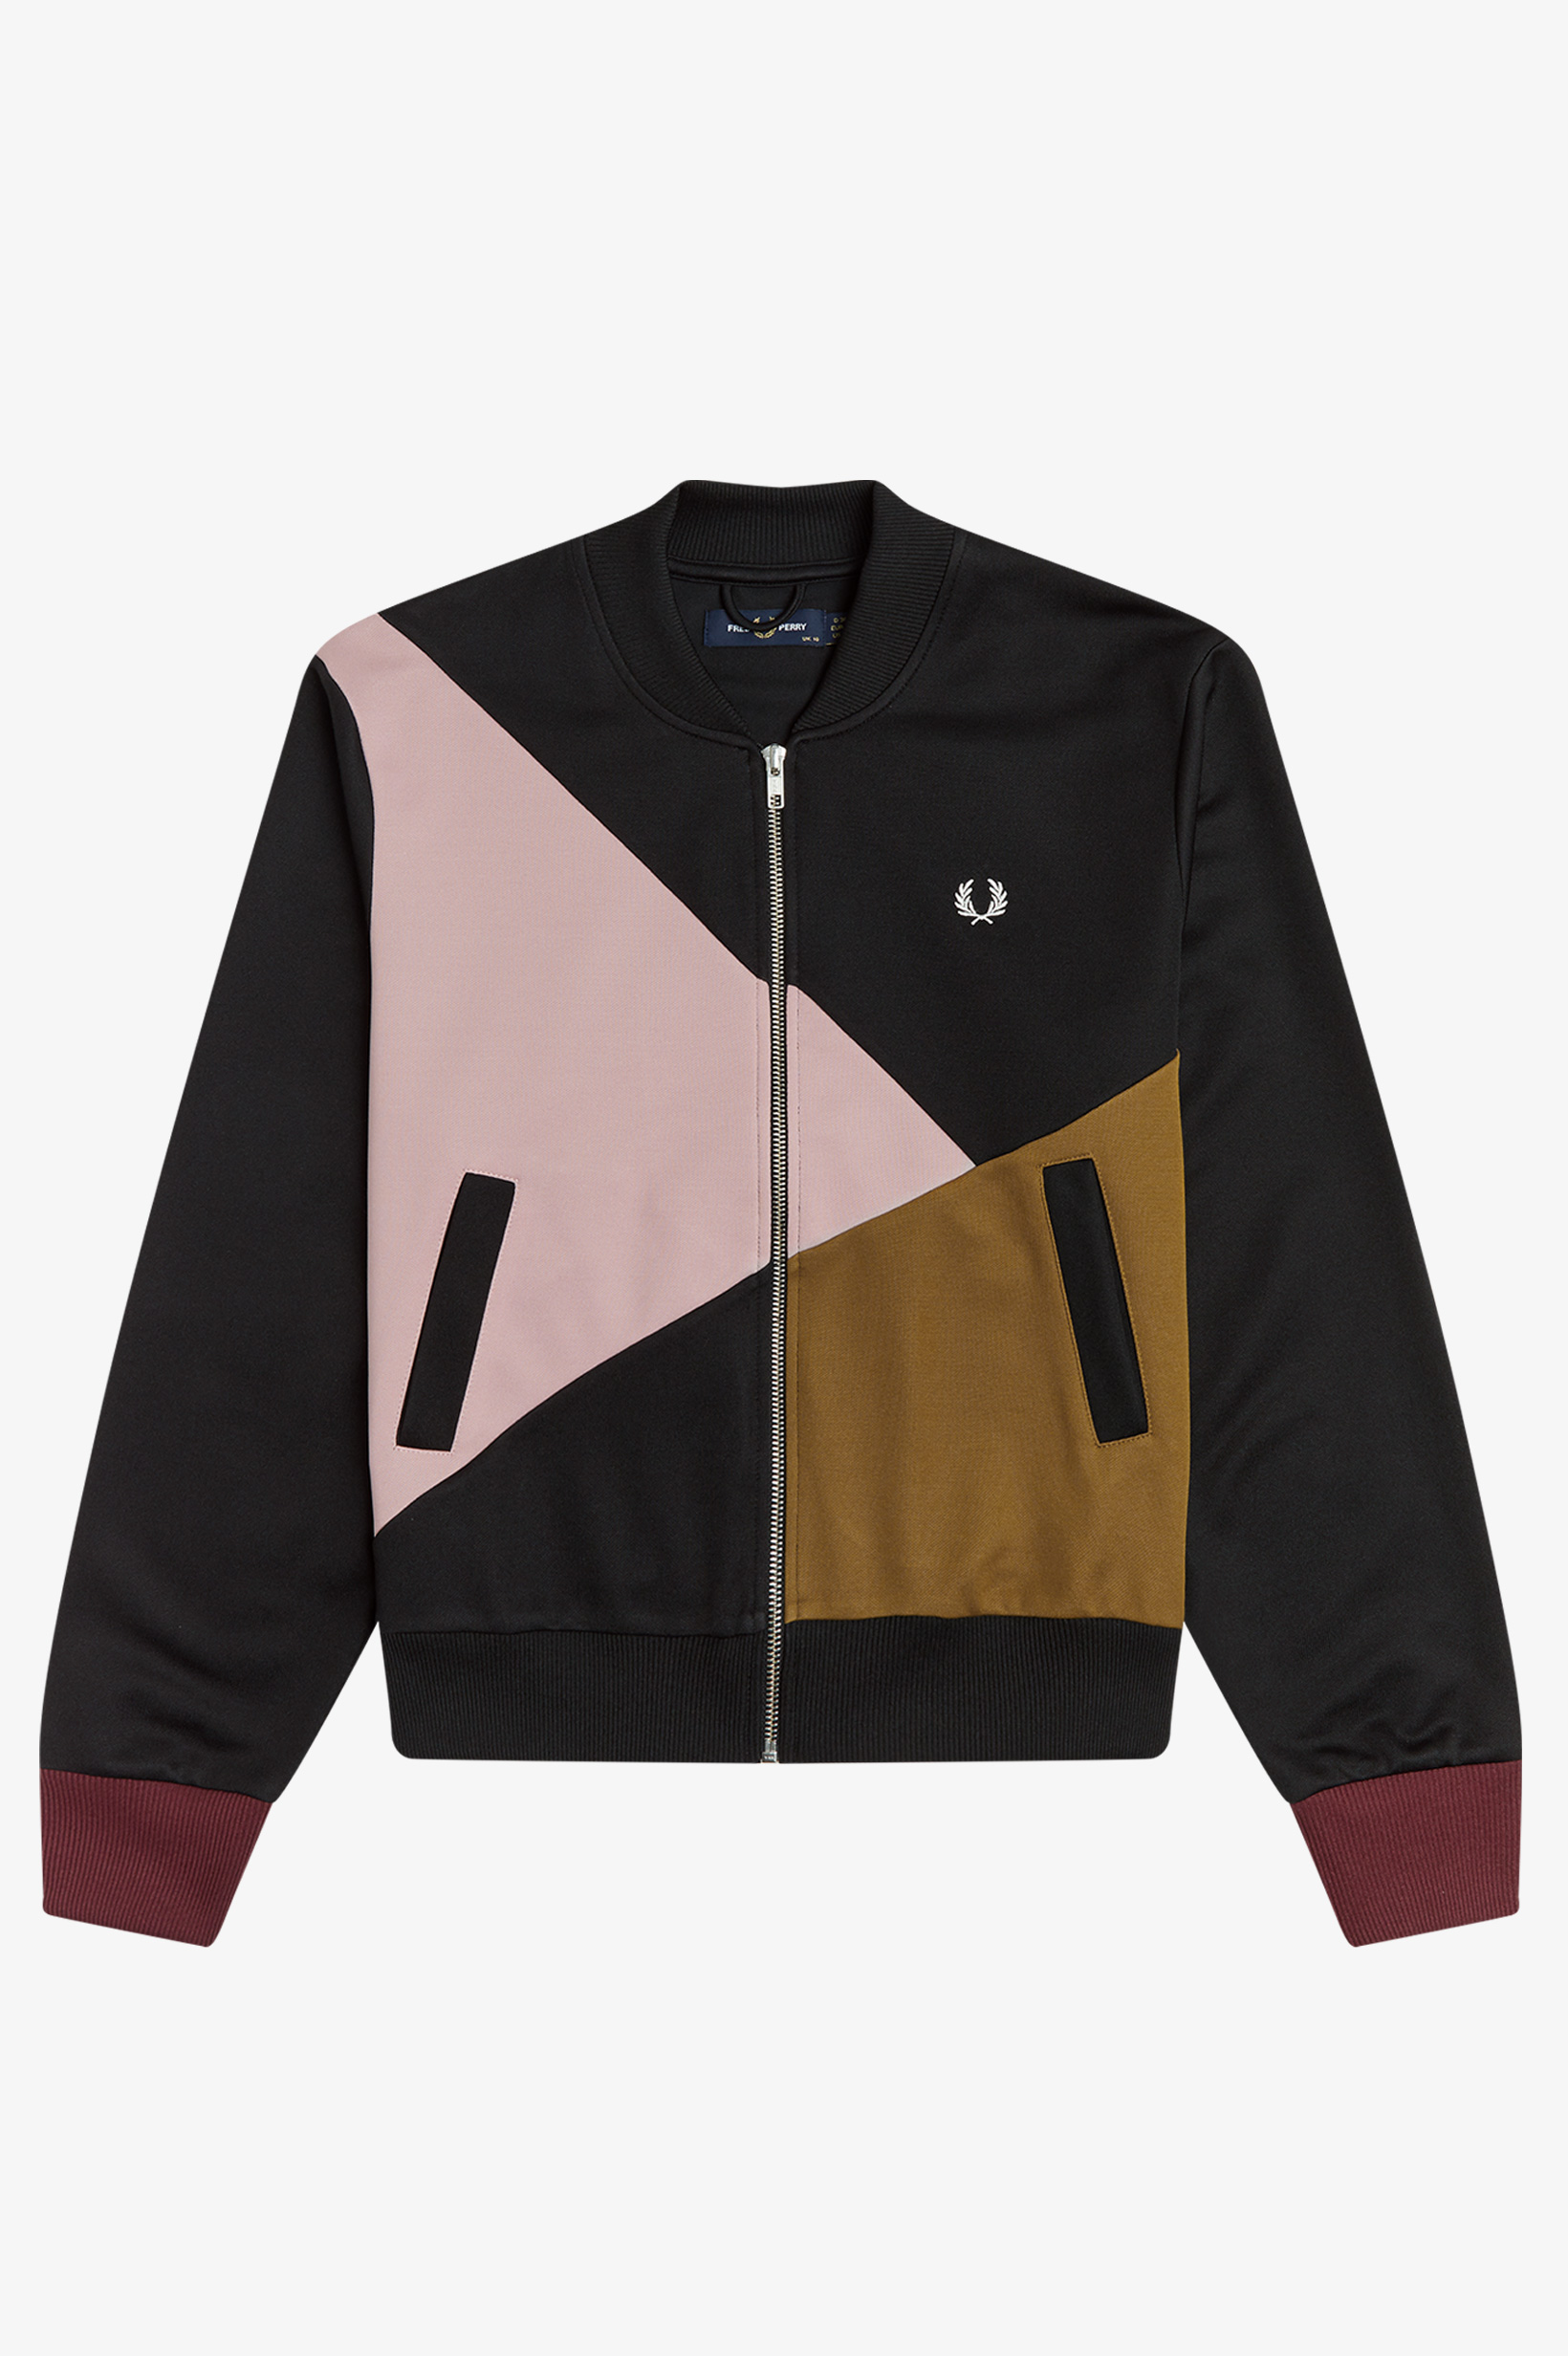 Fred Perry - COLOURBLOCK TRICOT TENNIS BOMBER - Black